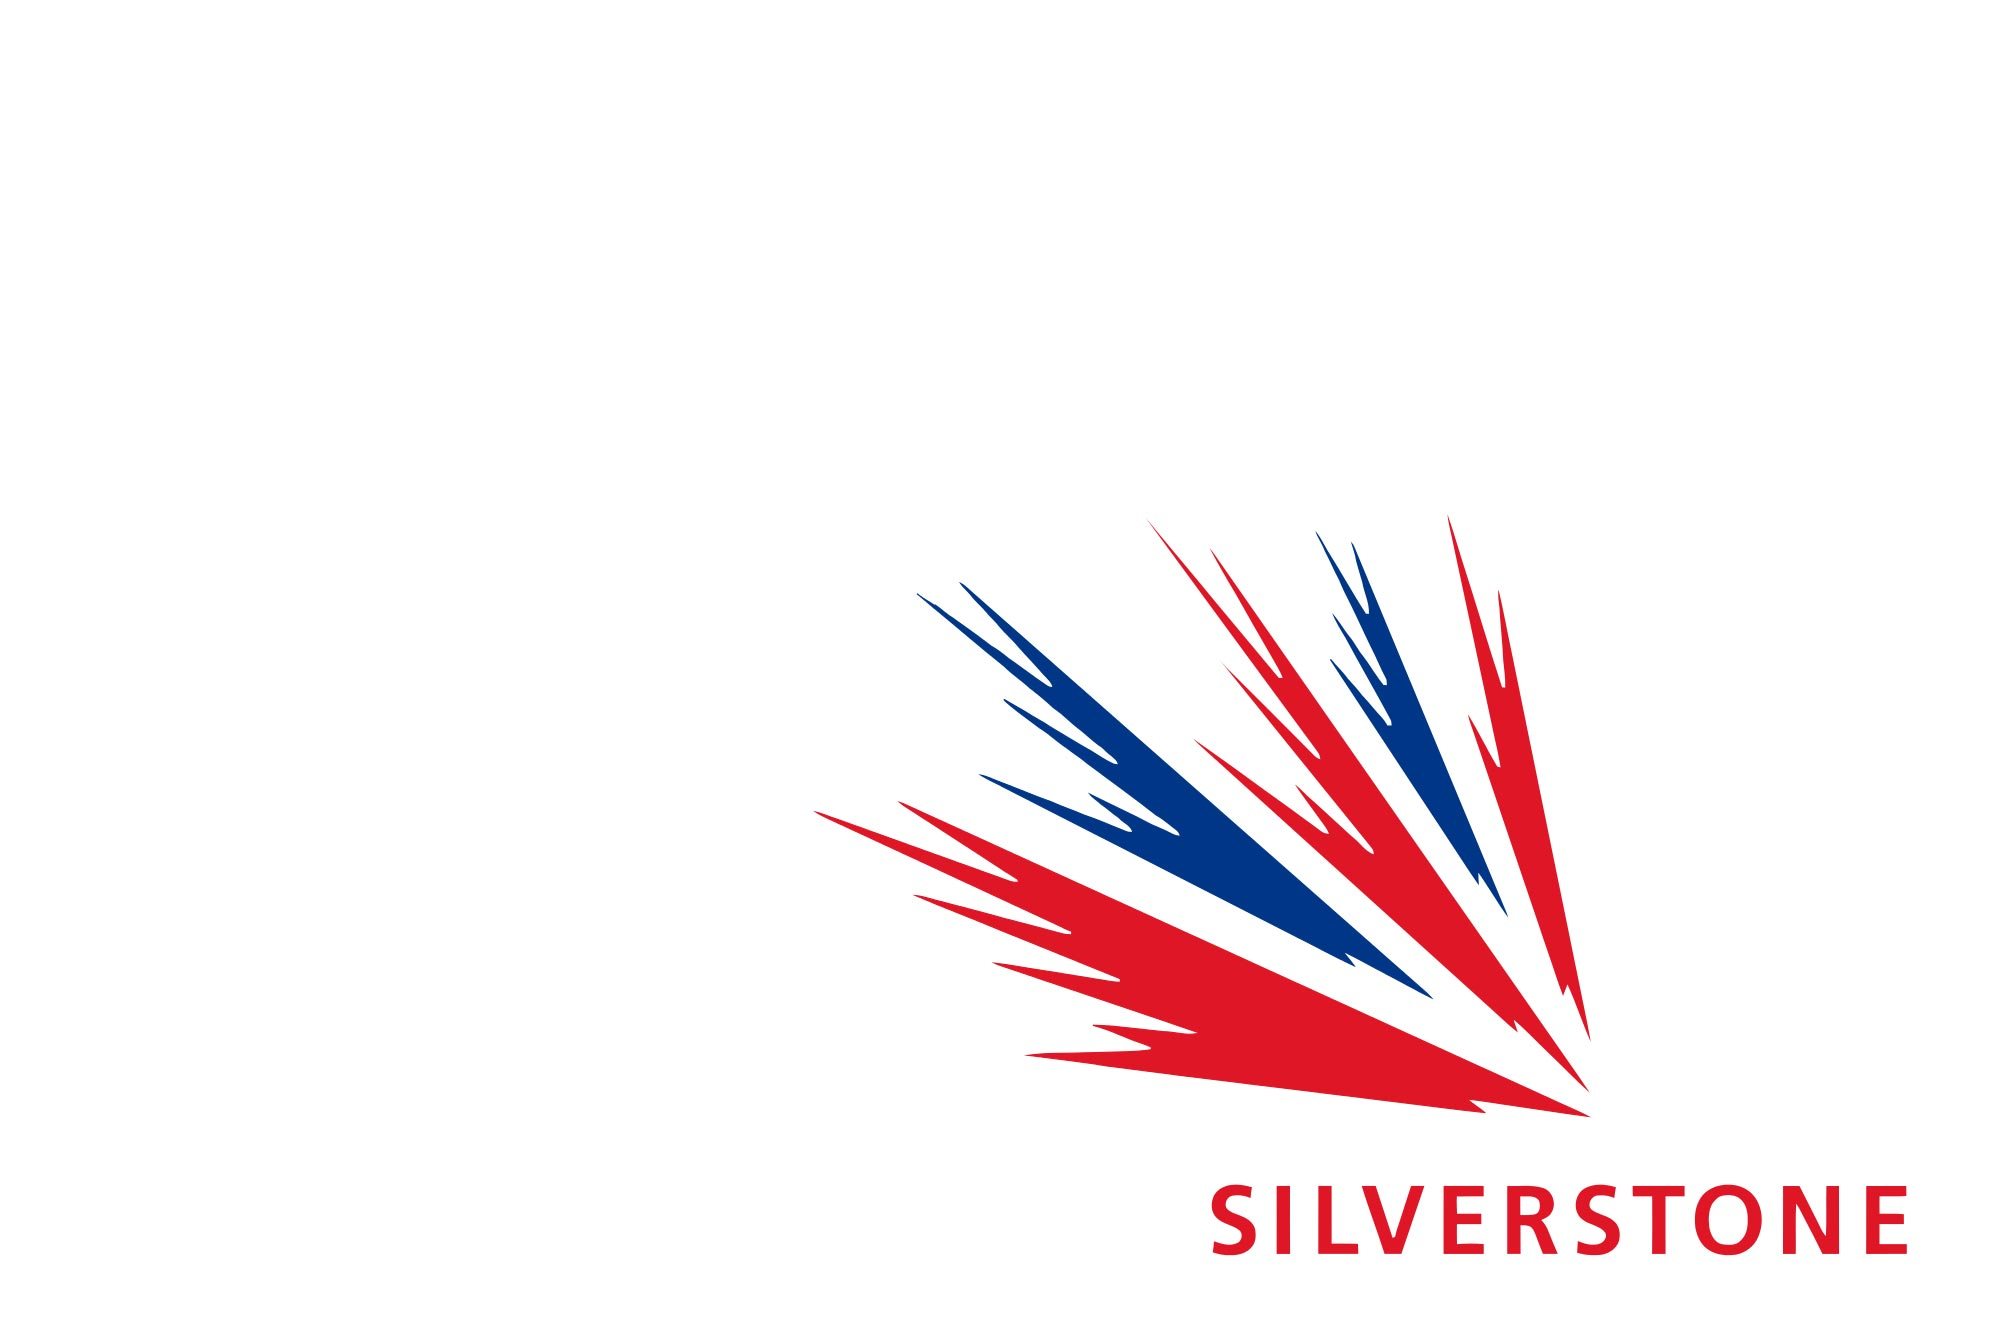 Silverstone Confirmed To Host British GP in 2015 & 2016 ...